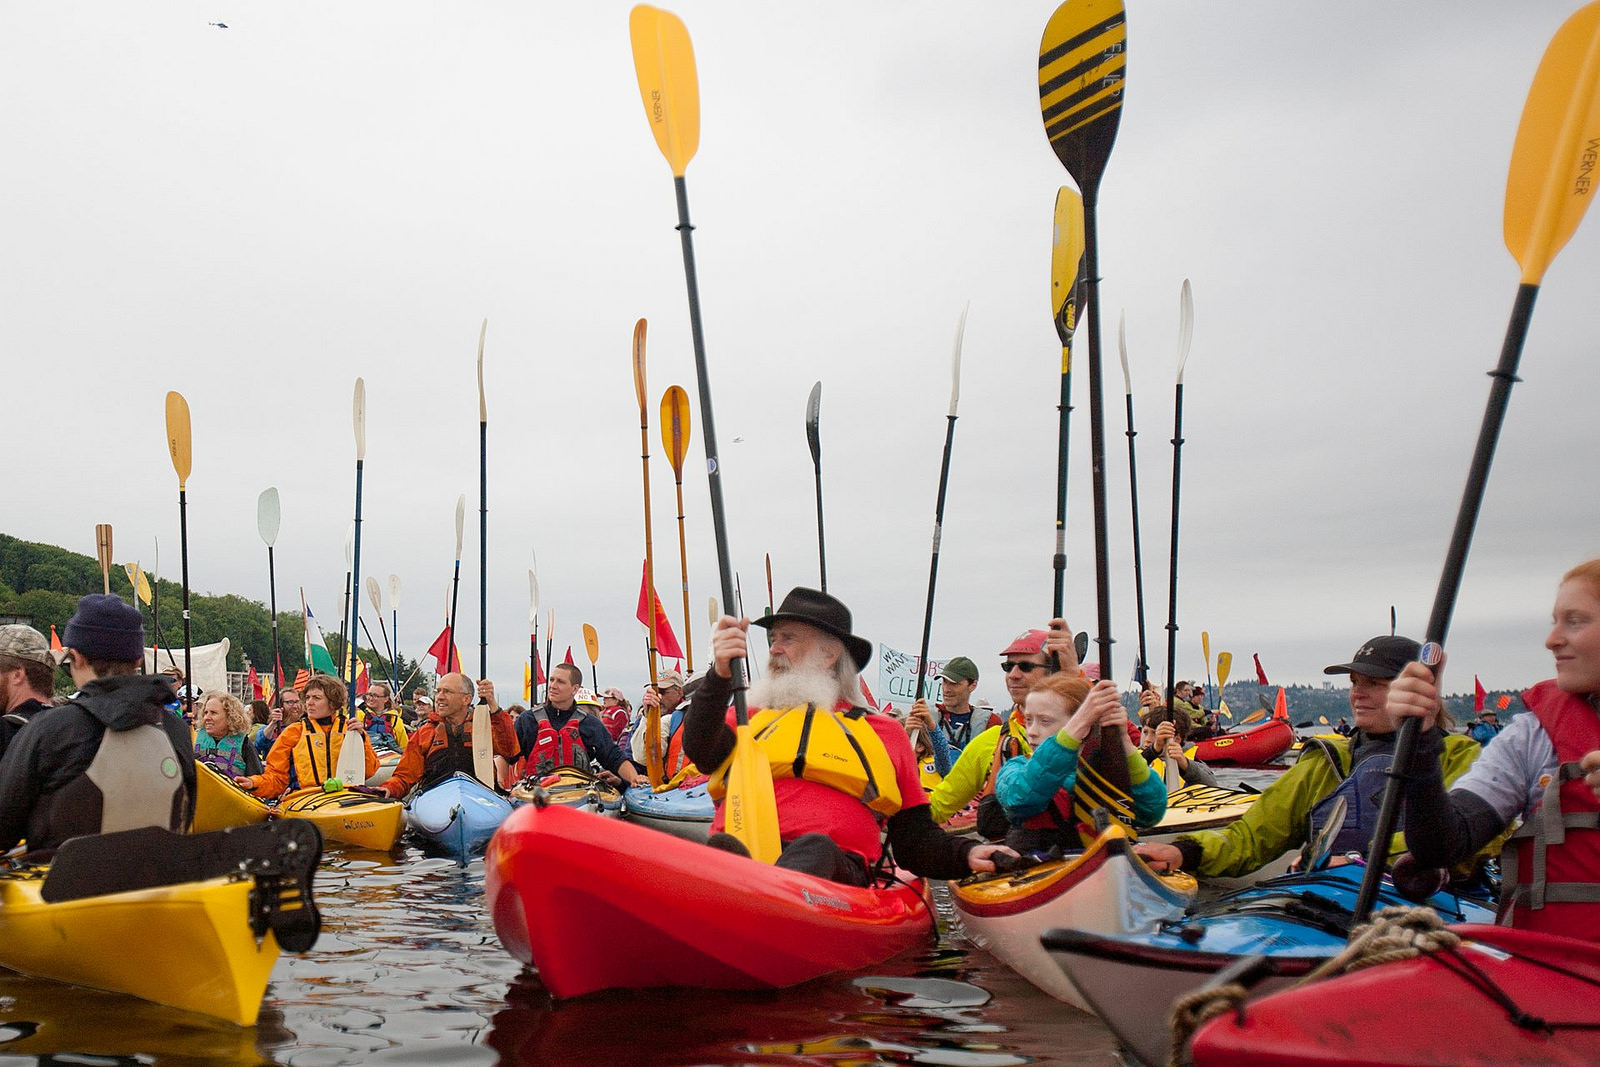 What's Next after Kayaktivism in Oregon